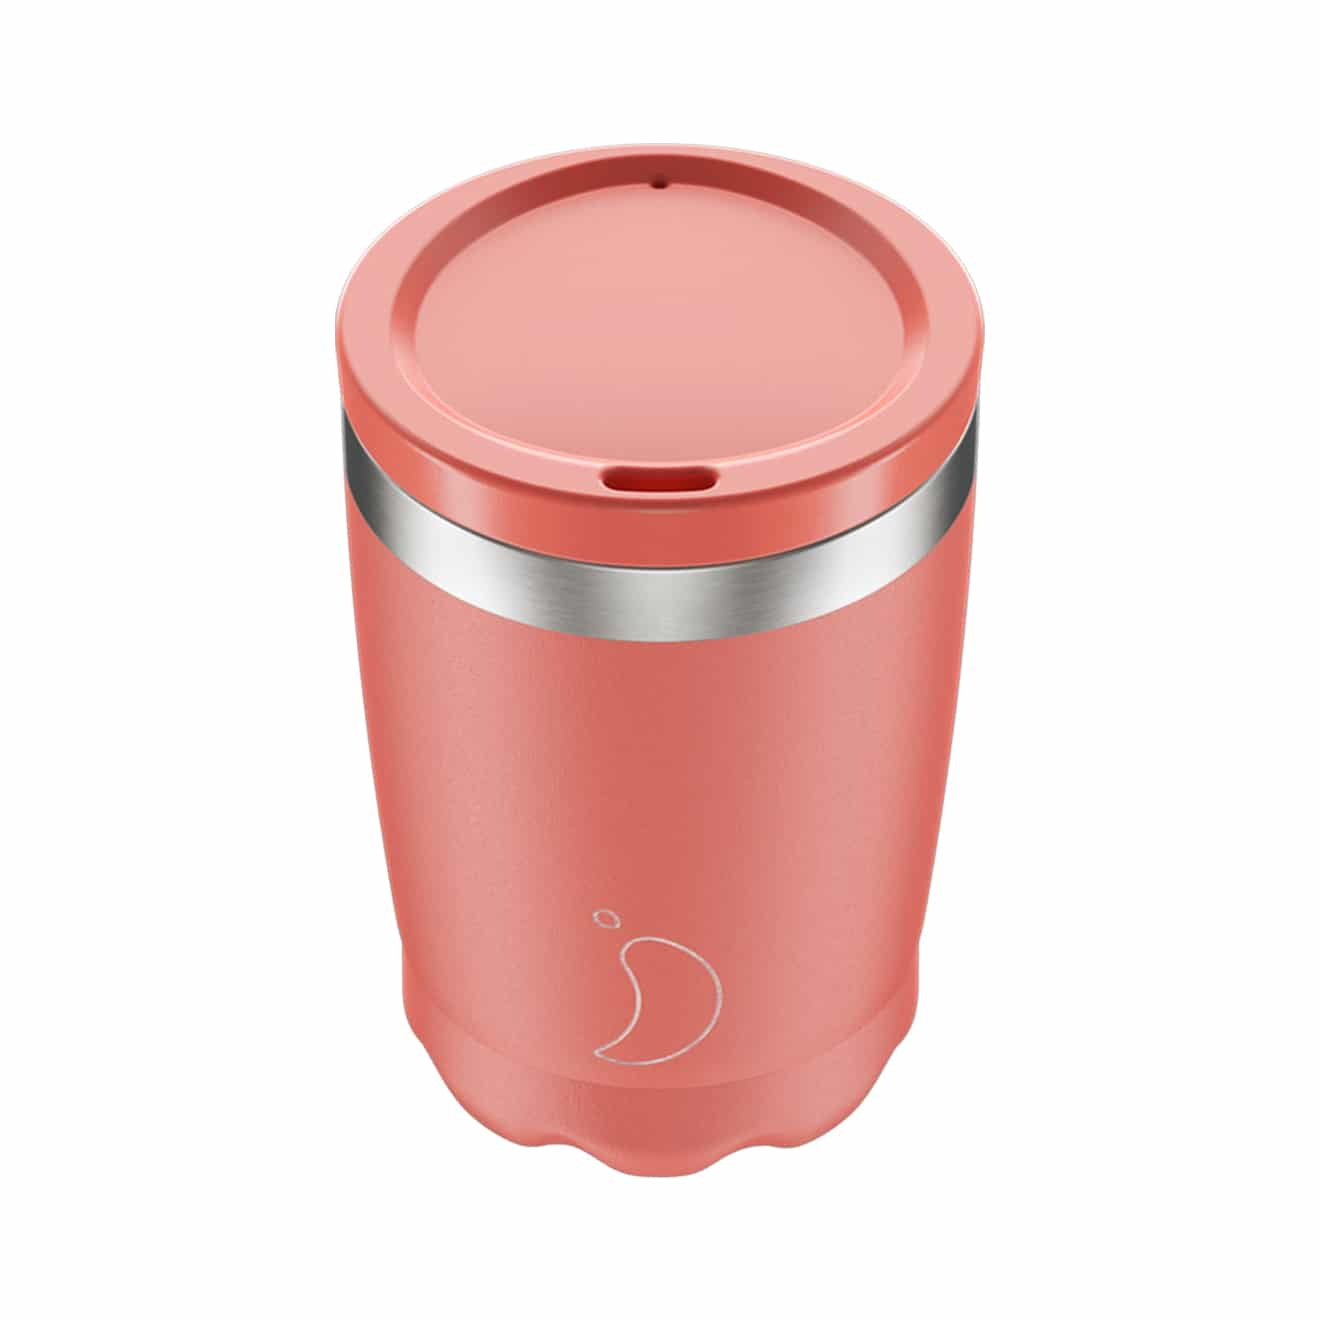 Chillys 340ml Coffee Cup Pastel Coral 2019 Parasol Store